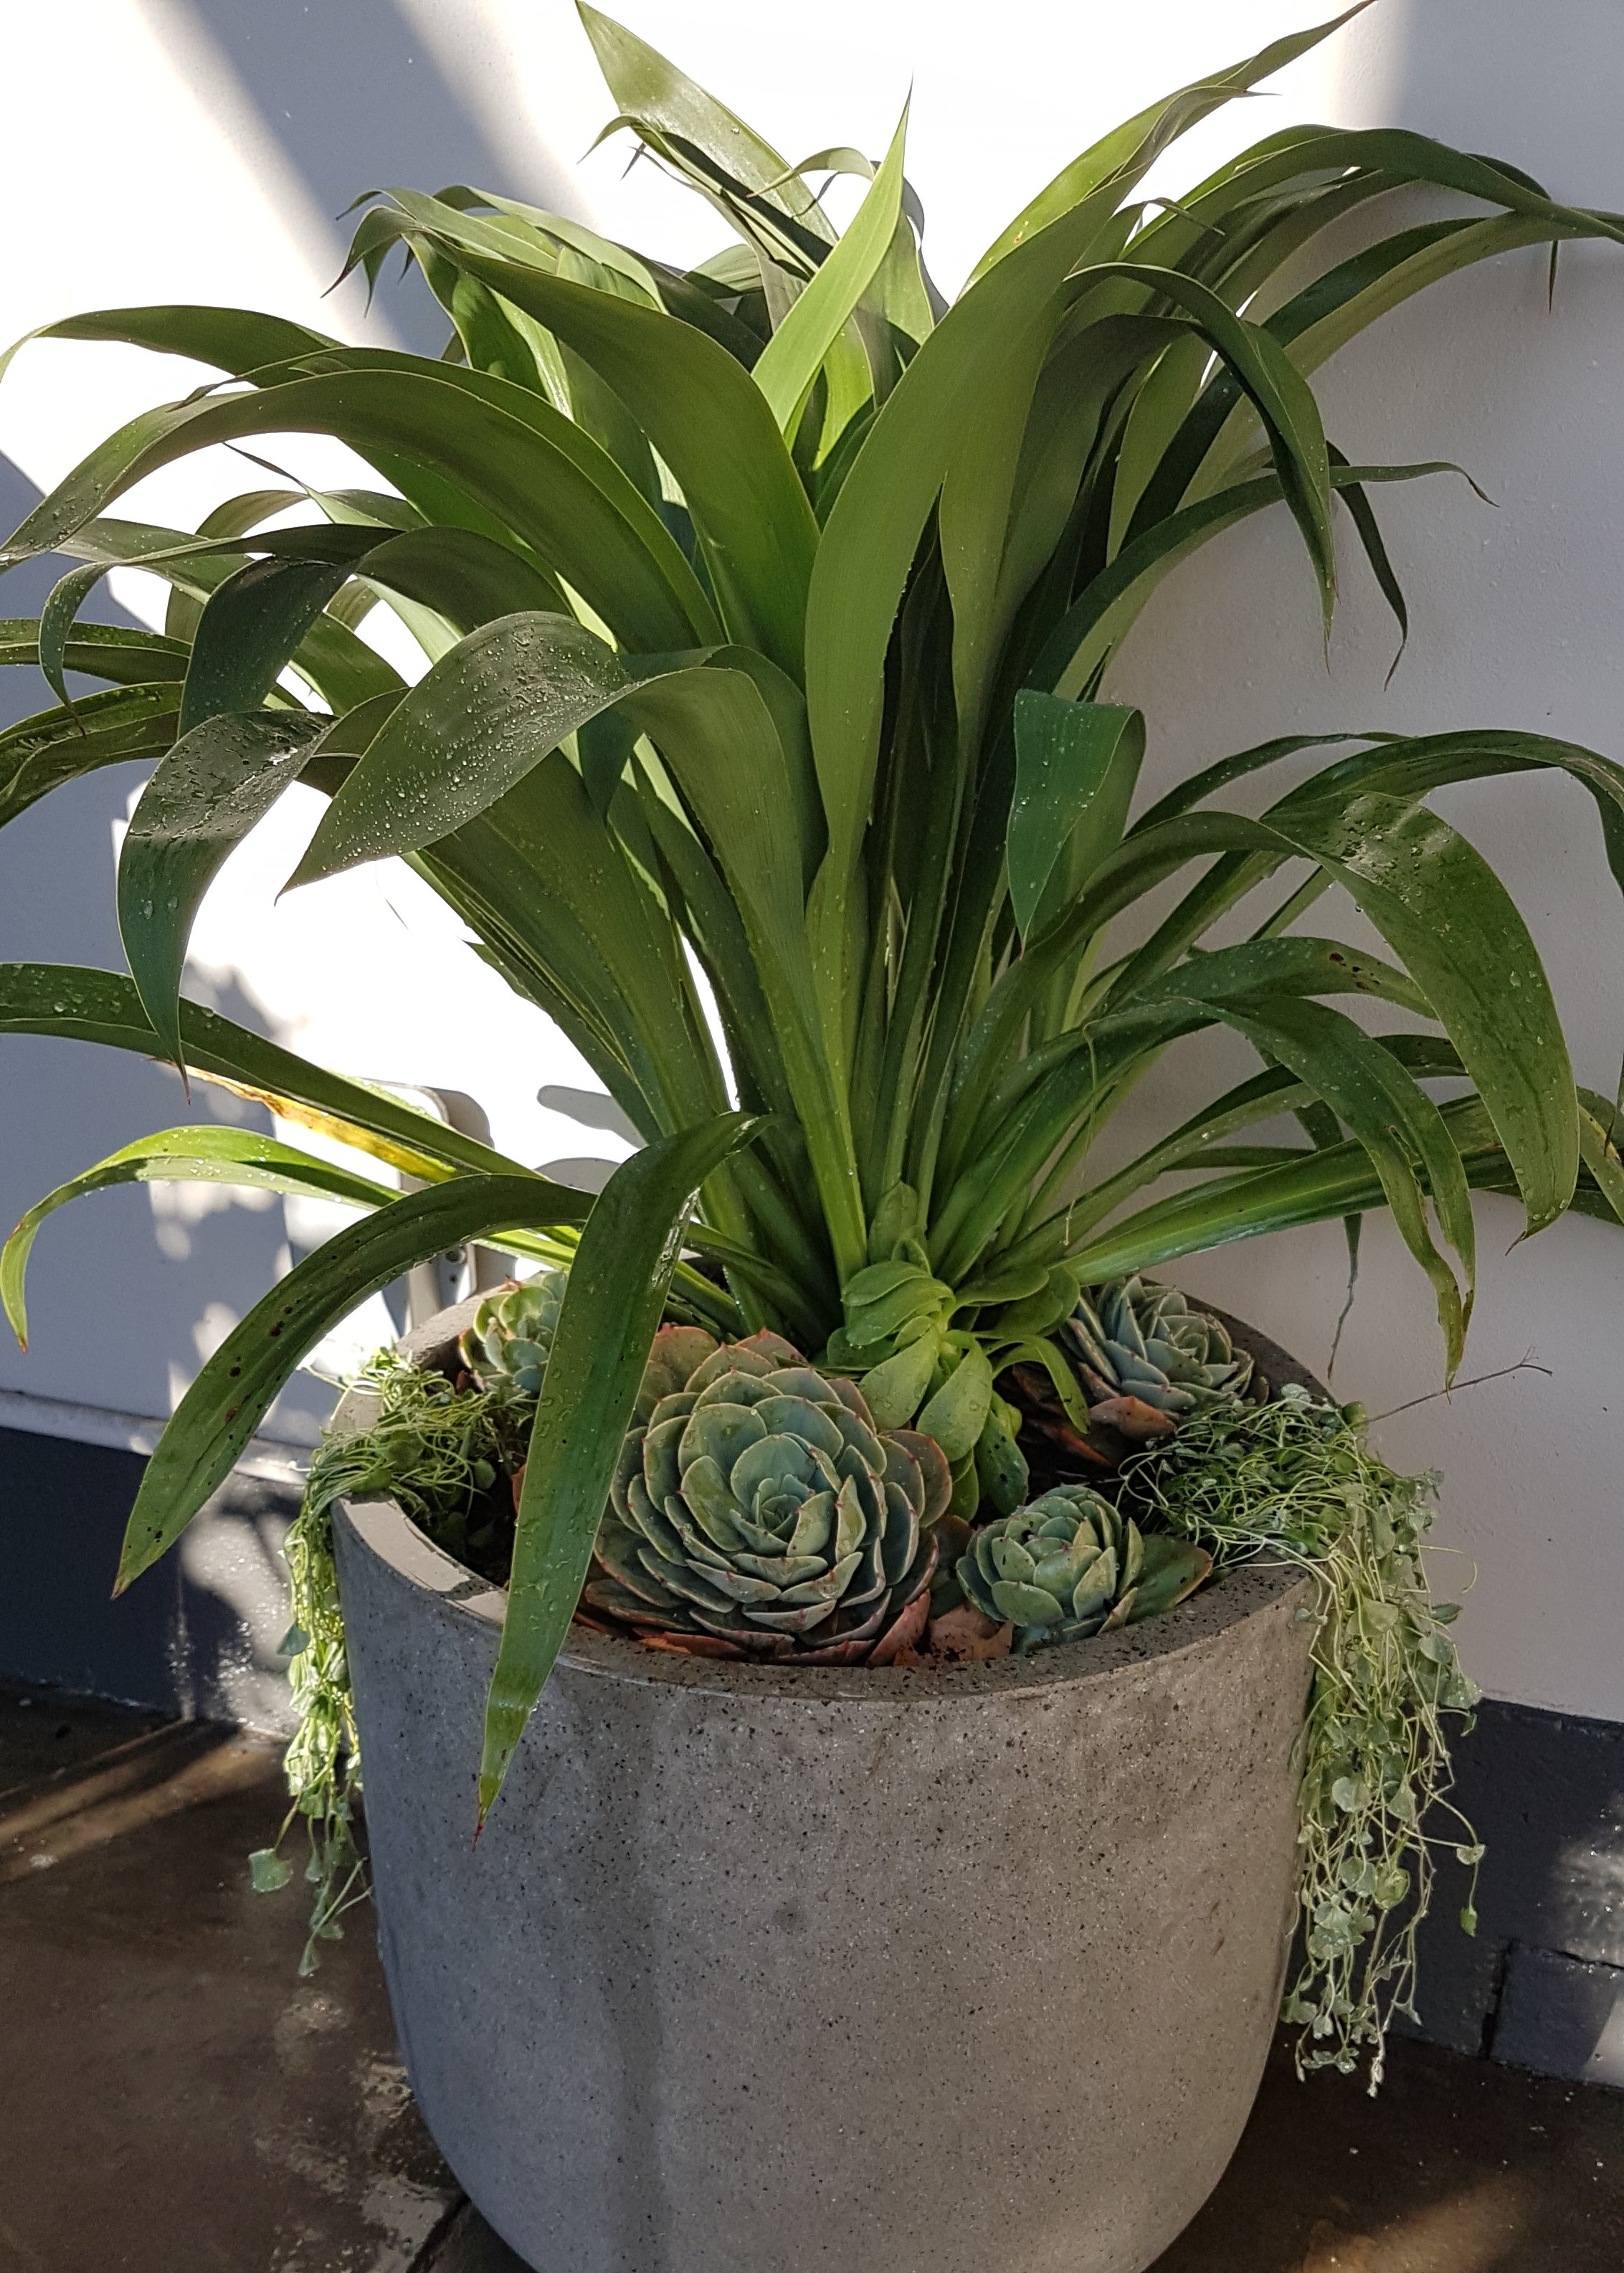 Potted plants, hardy potted plants, feature pots.